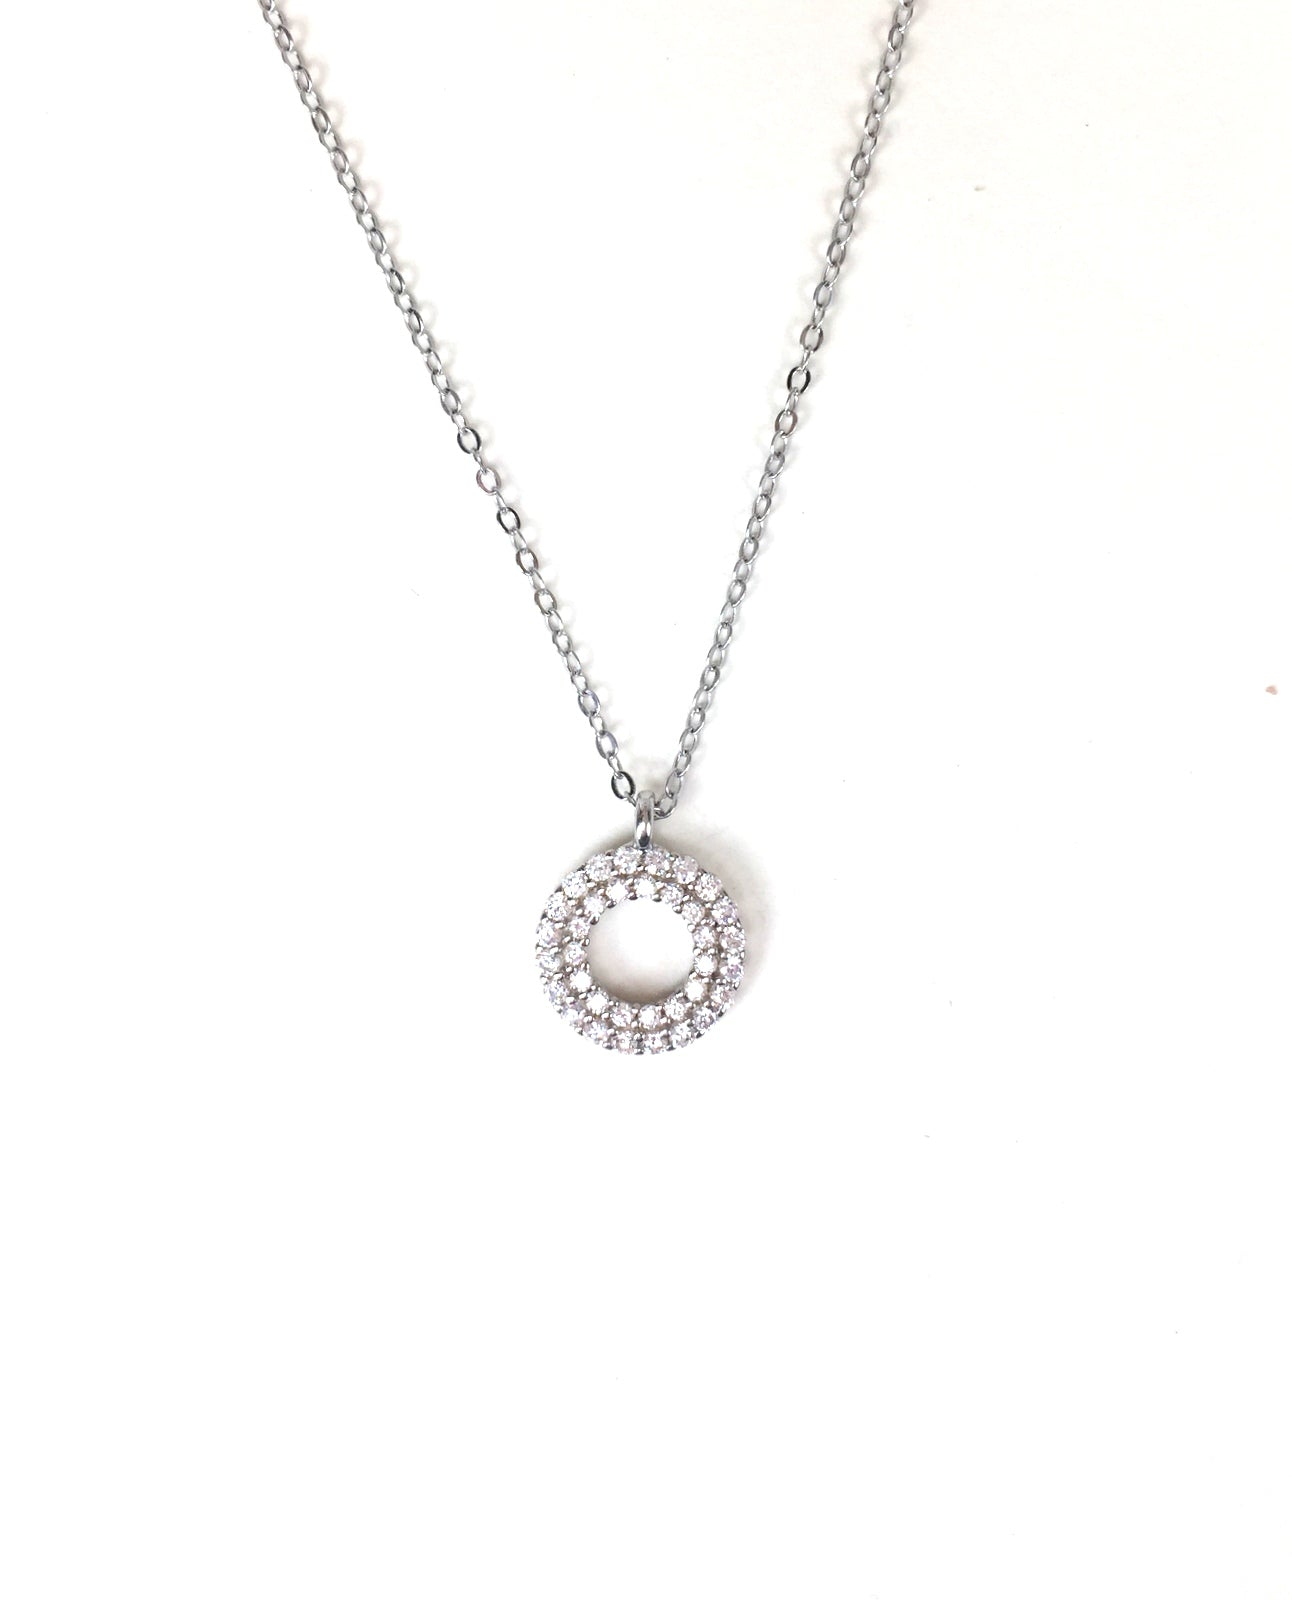 CIRCLE PAVE CZ STERLING SILVER NECKLACE